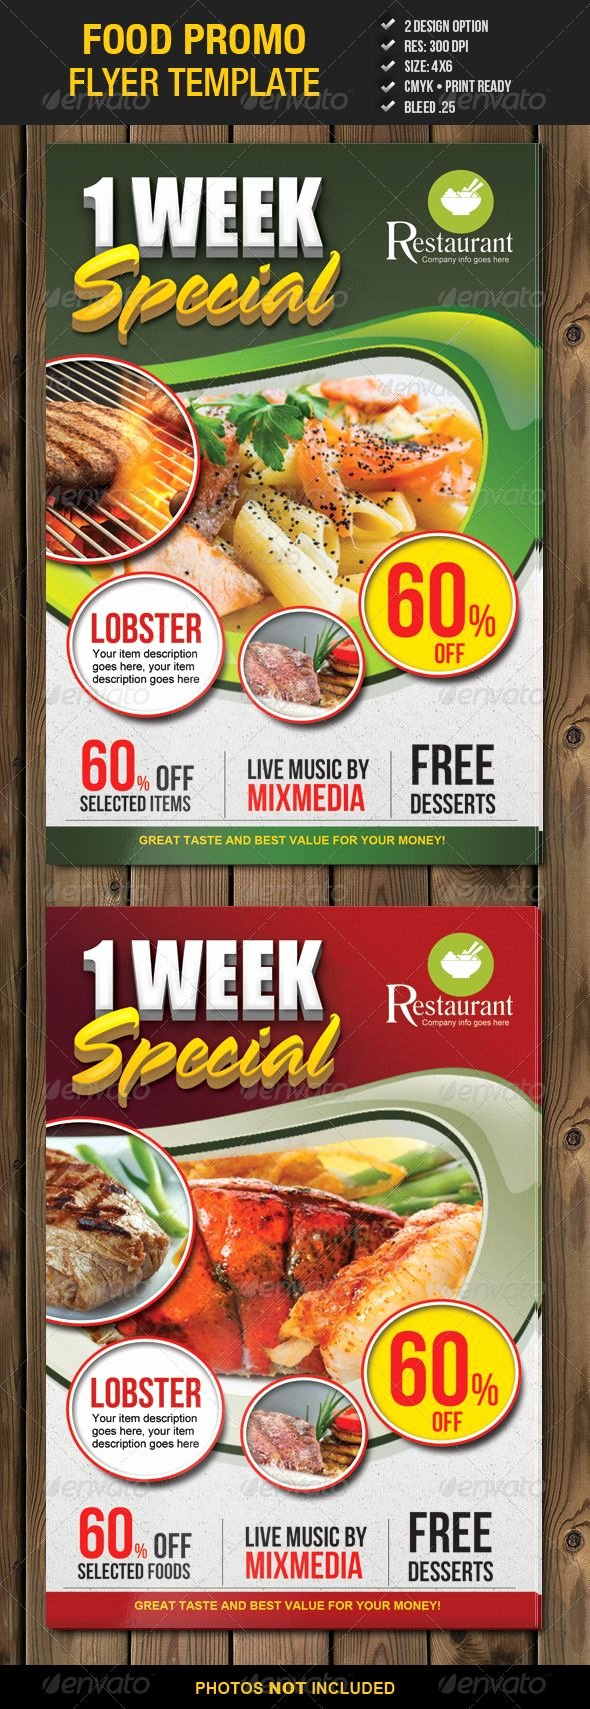 Promo Flyer Template Free Inspirational Food Promo Flyer Template 2